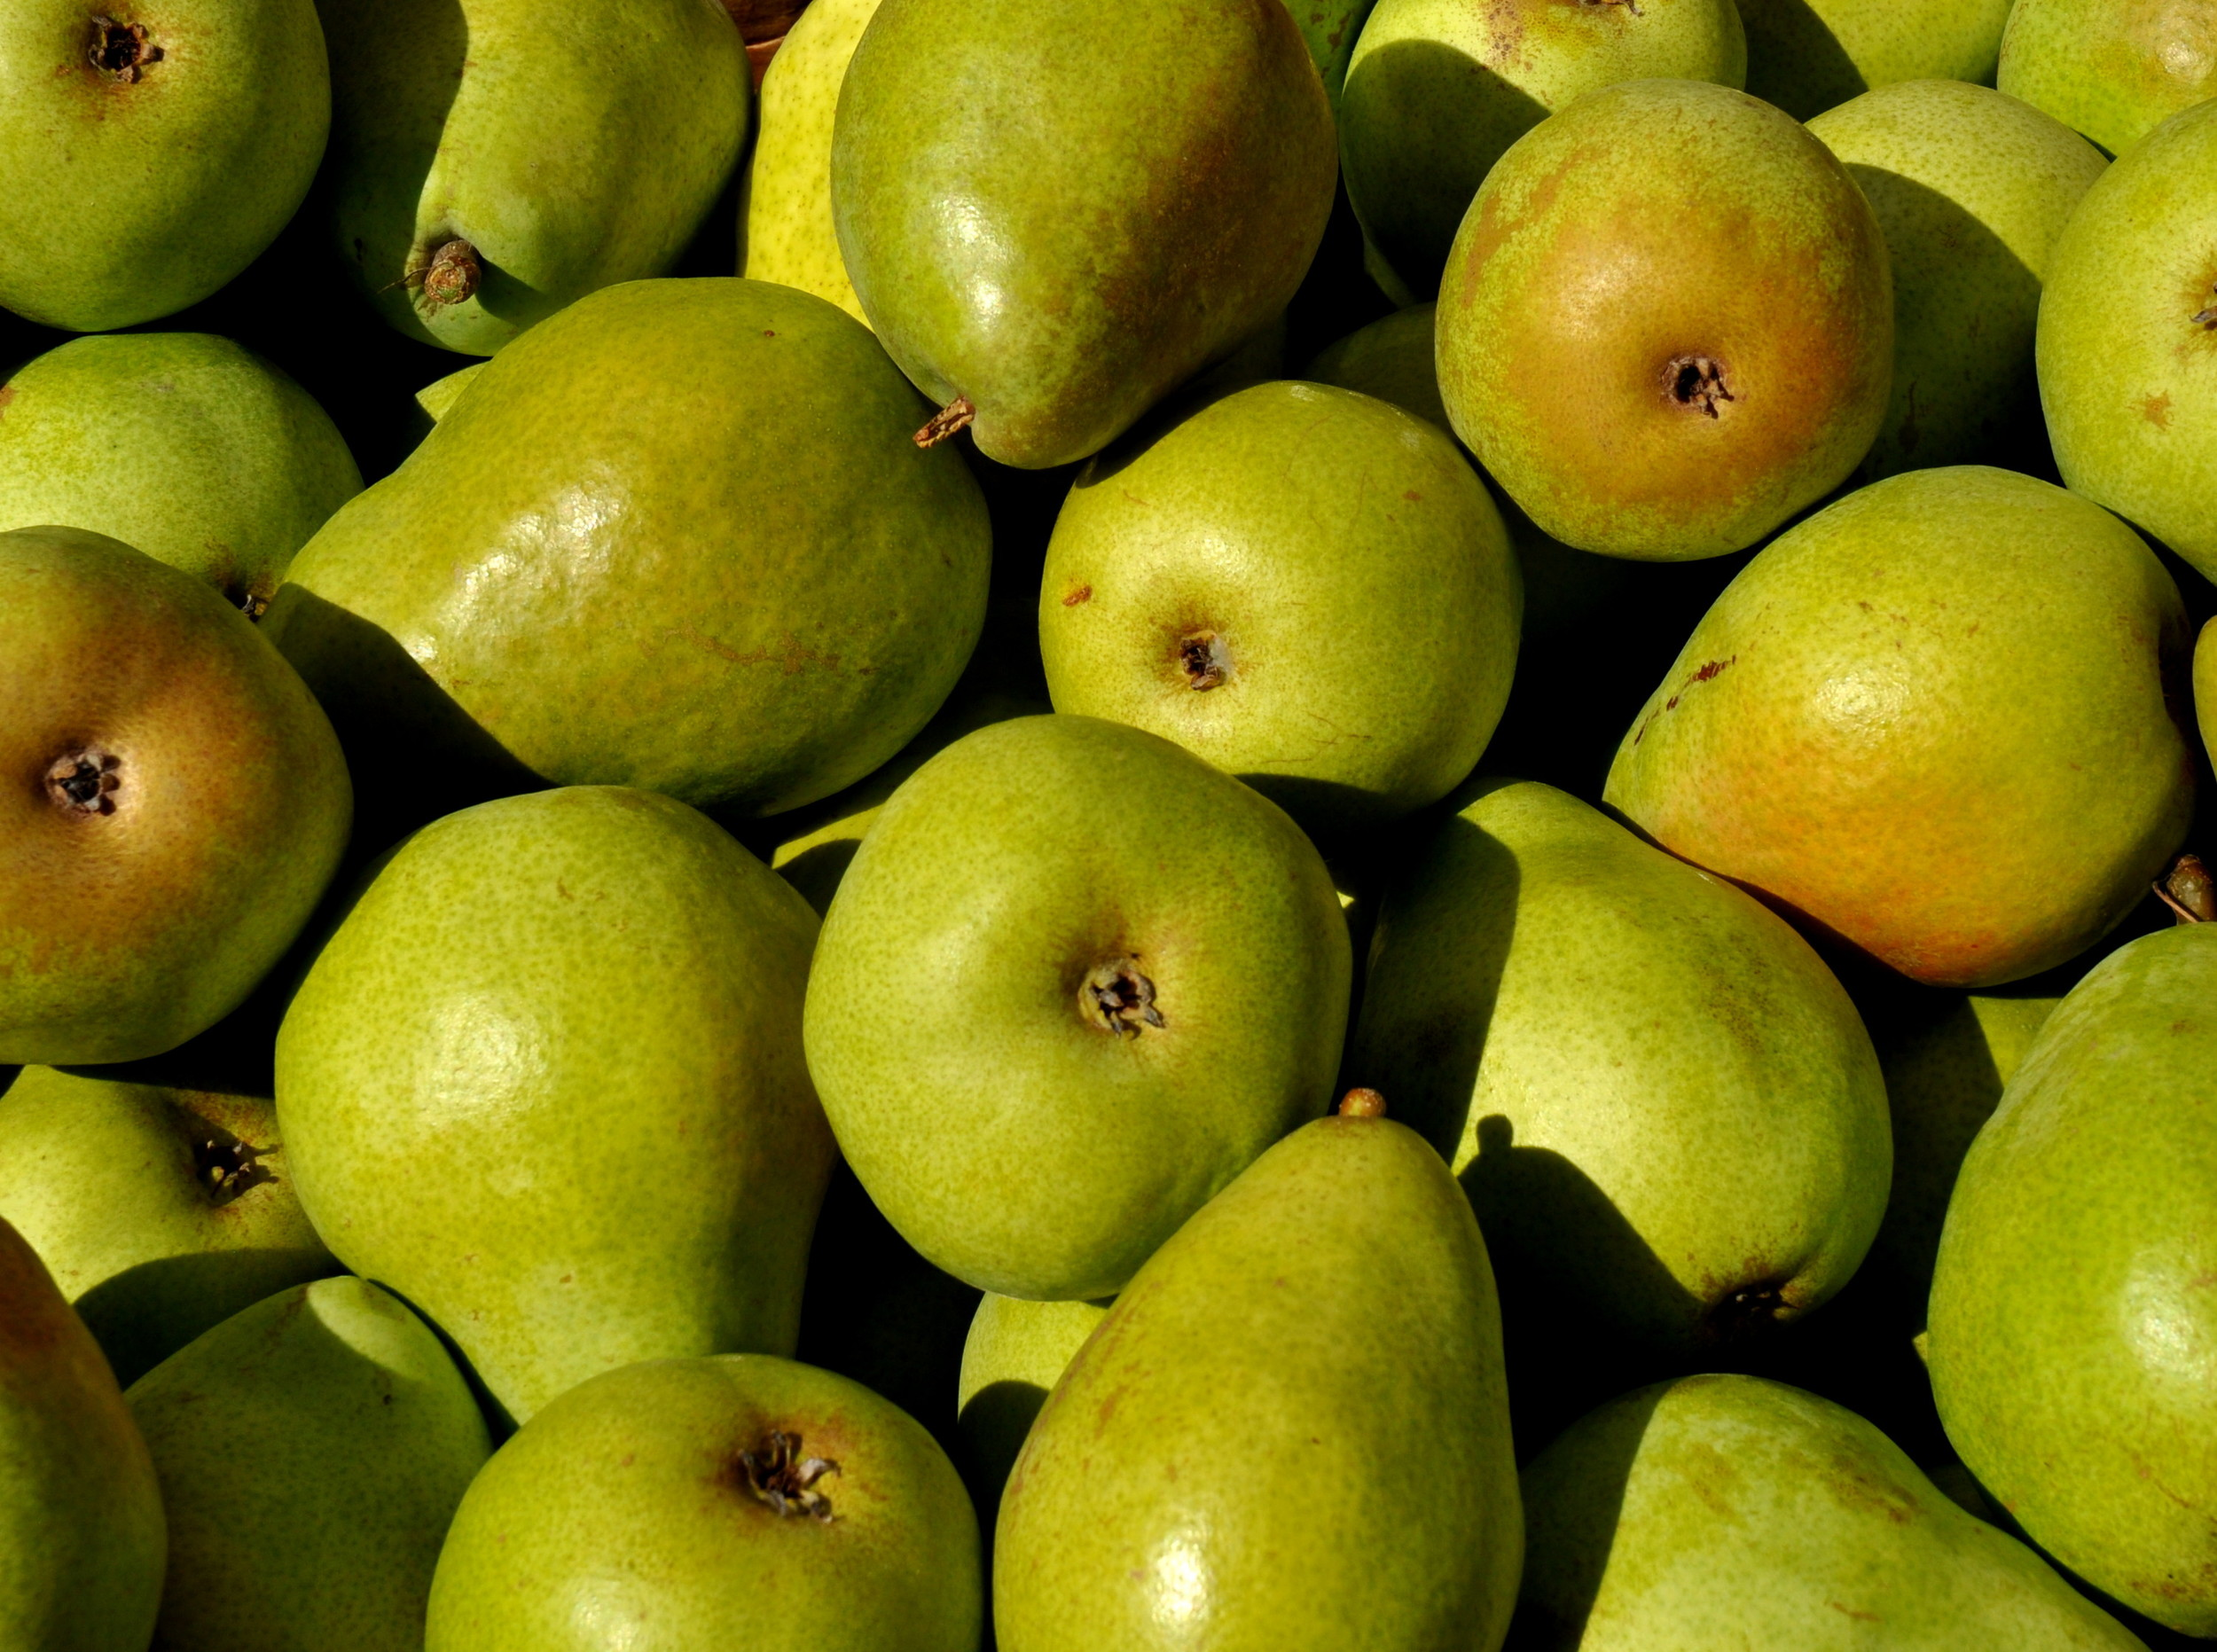 Certified organic D'Anjou pears from ACMA Mission Orchards. Photo copyright 2013 by Zachary D. Lyons.